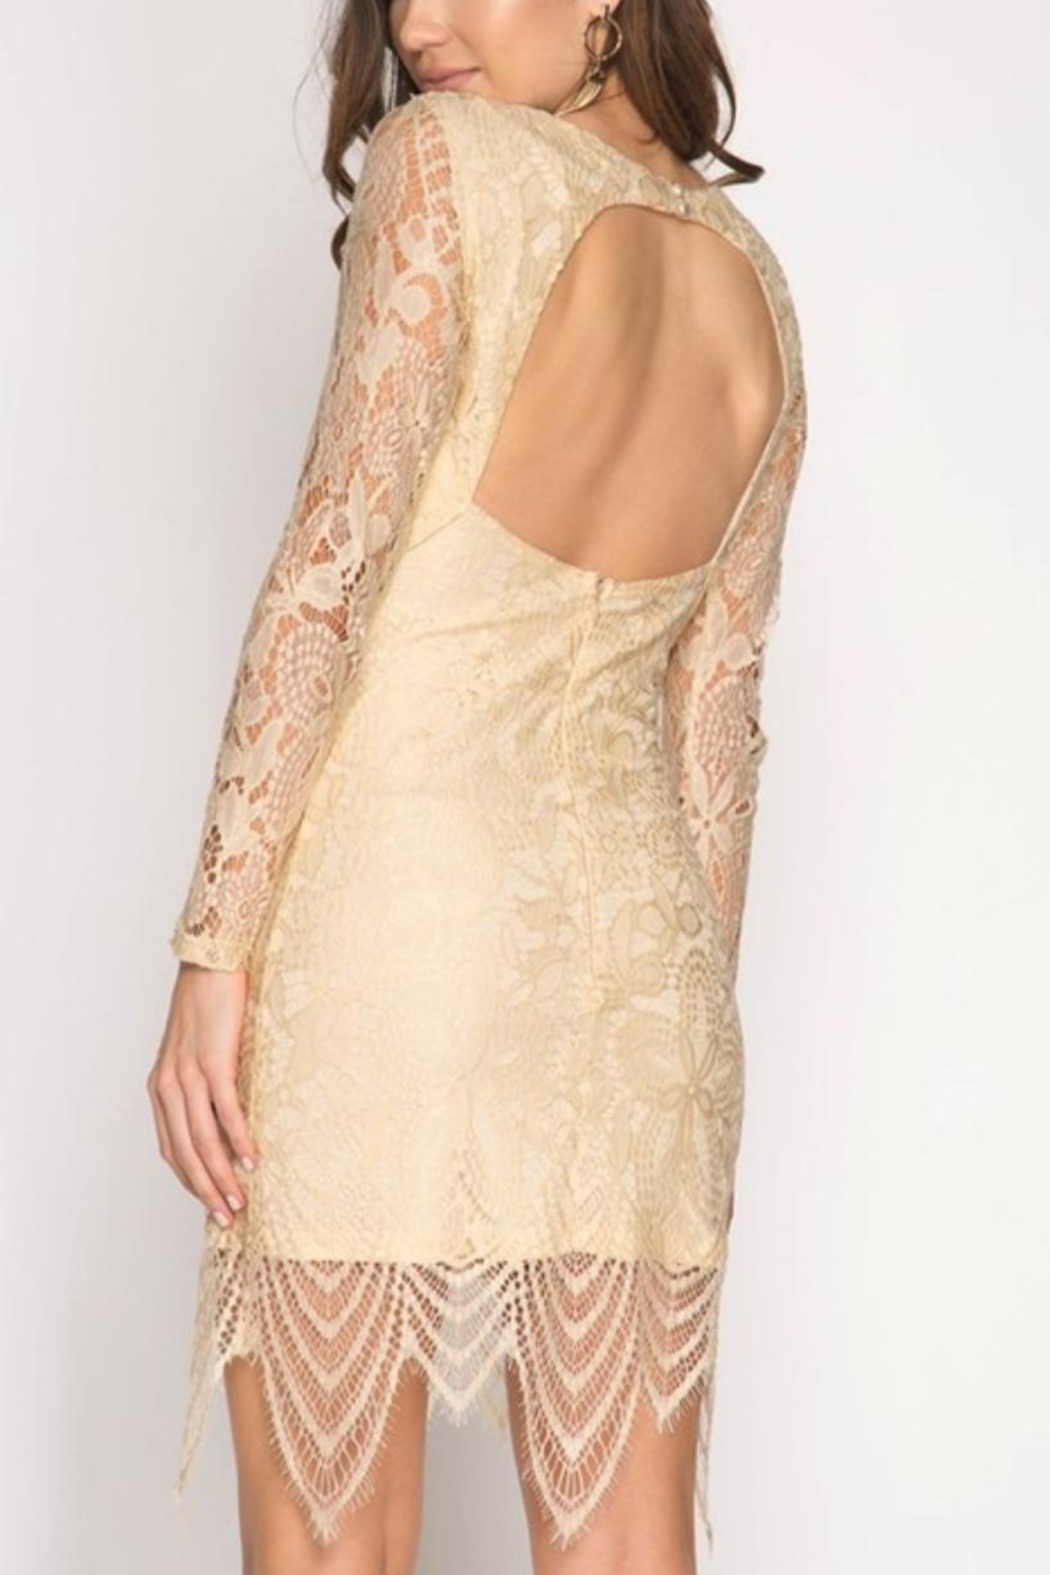 She + Sky Lace Open-Backed Dress - Front Full Image